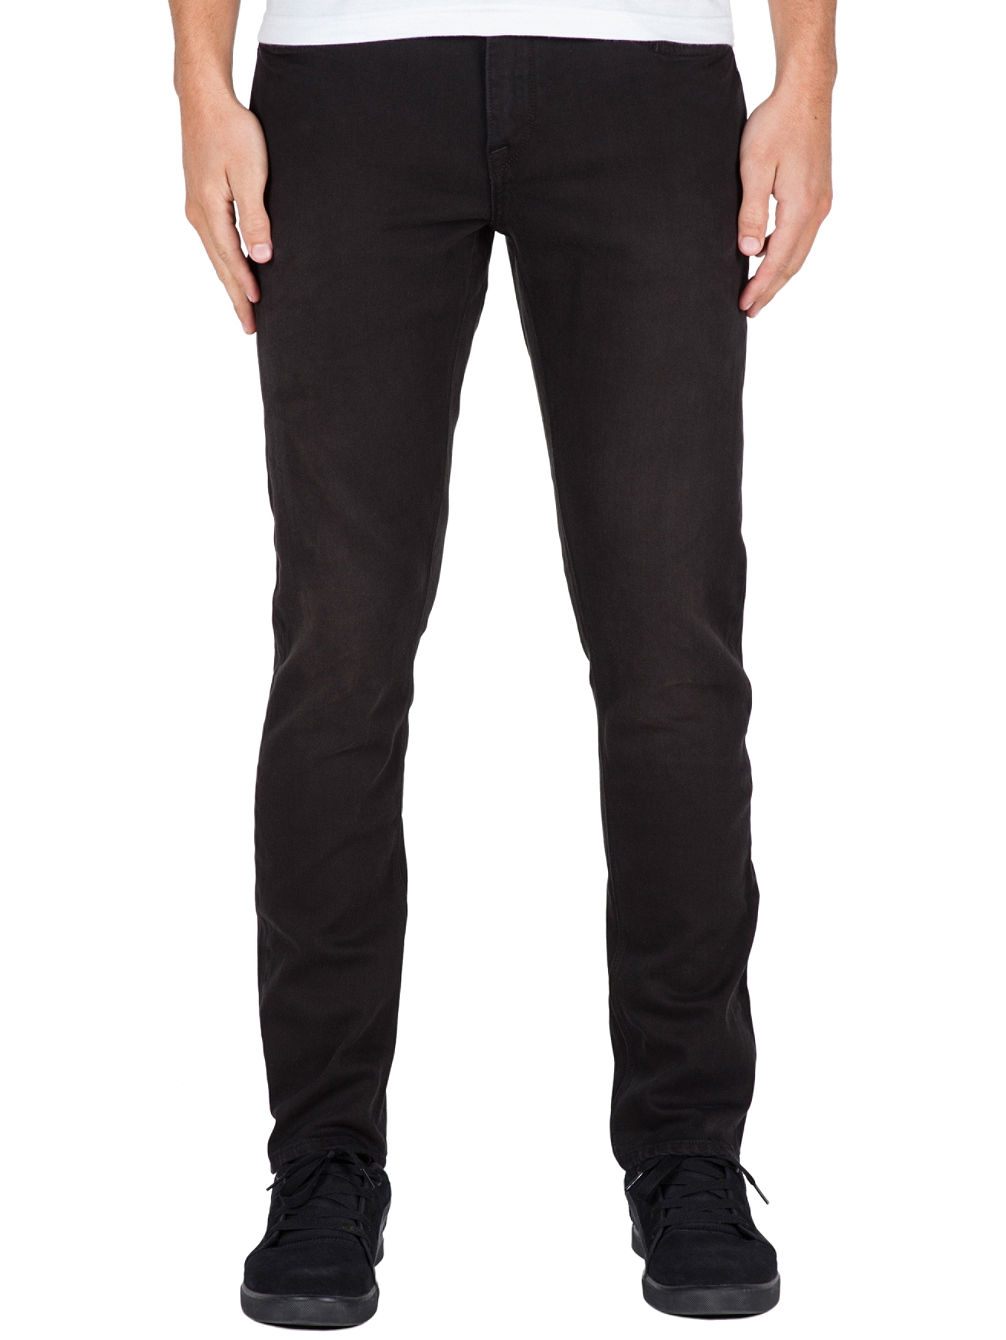 Solver Tapered Jeans